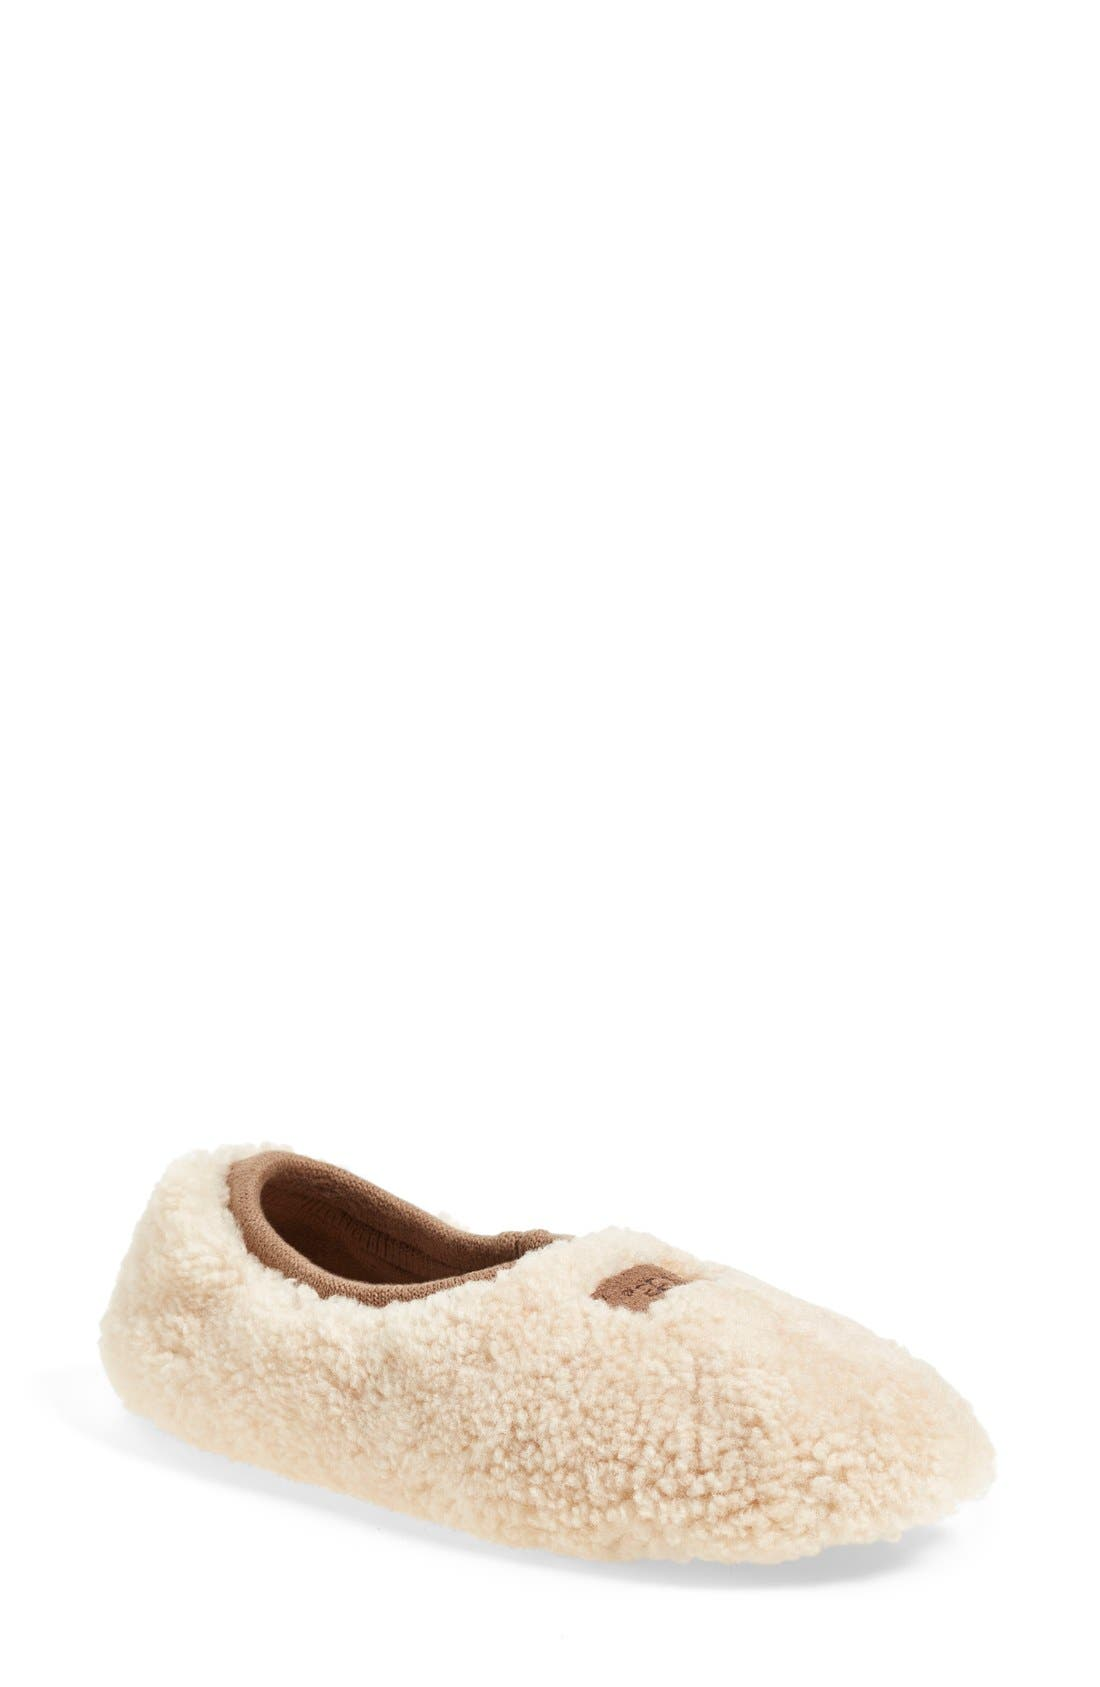 Birche Slipper,                         Main,                         color, NATURAL